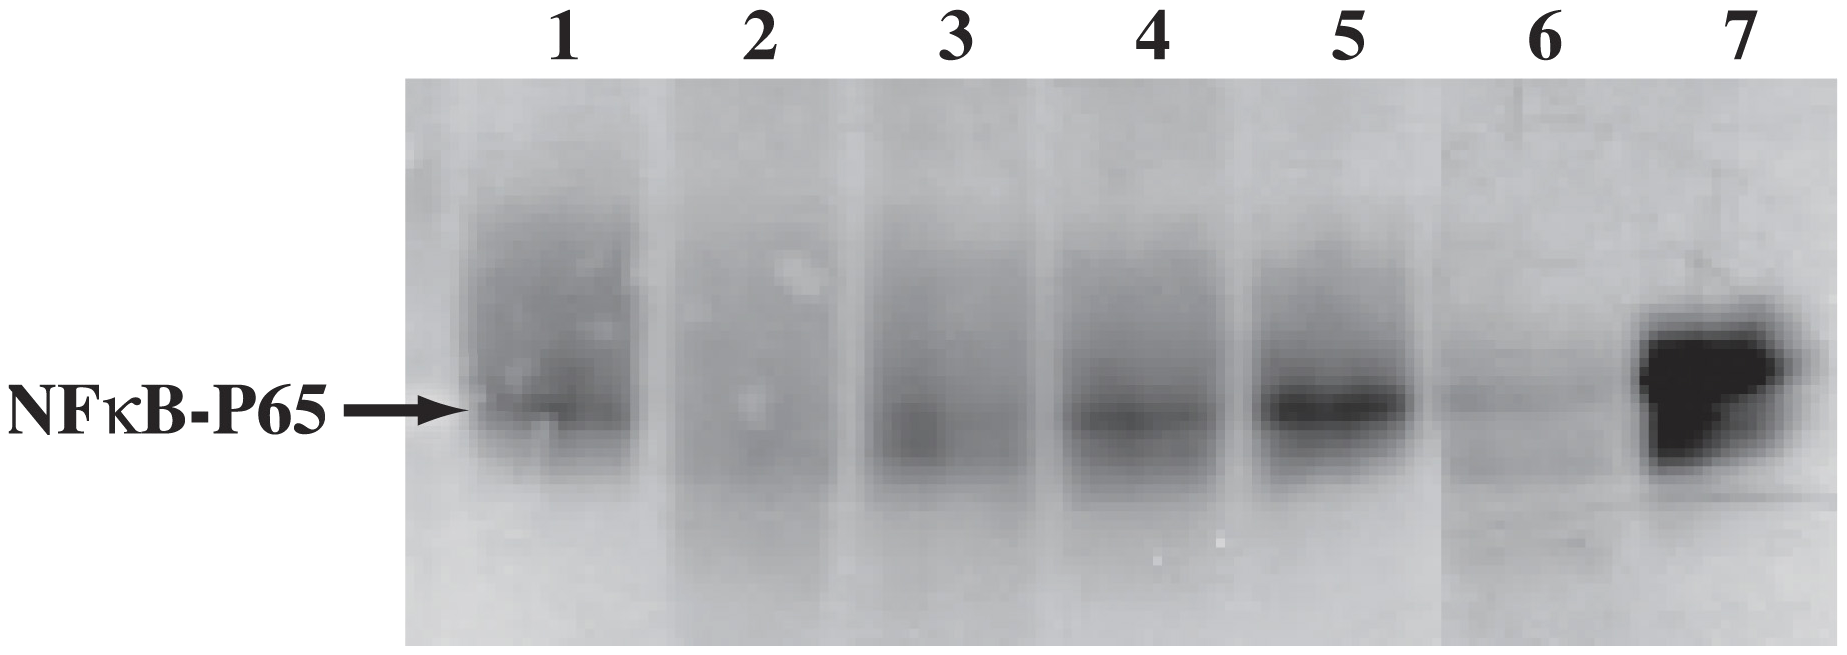 Proteolytic cleavage of r-human NF-κB P65 by wild type- and r-cruzain but not by proteases expressed by cruzain-deficient <i>T. cruzi.</i>